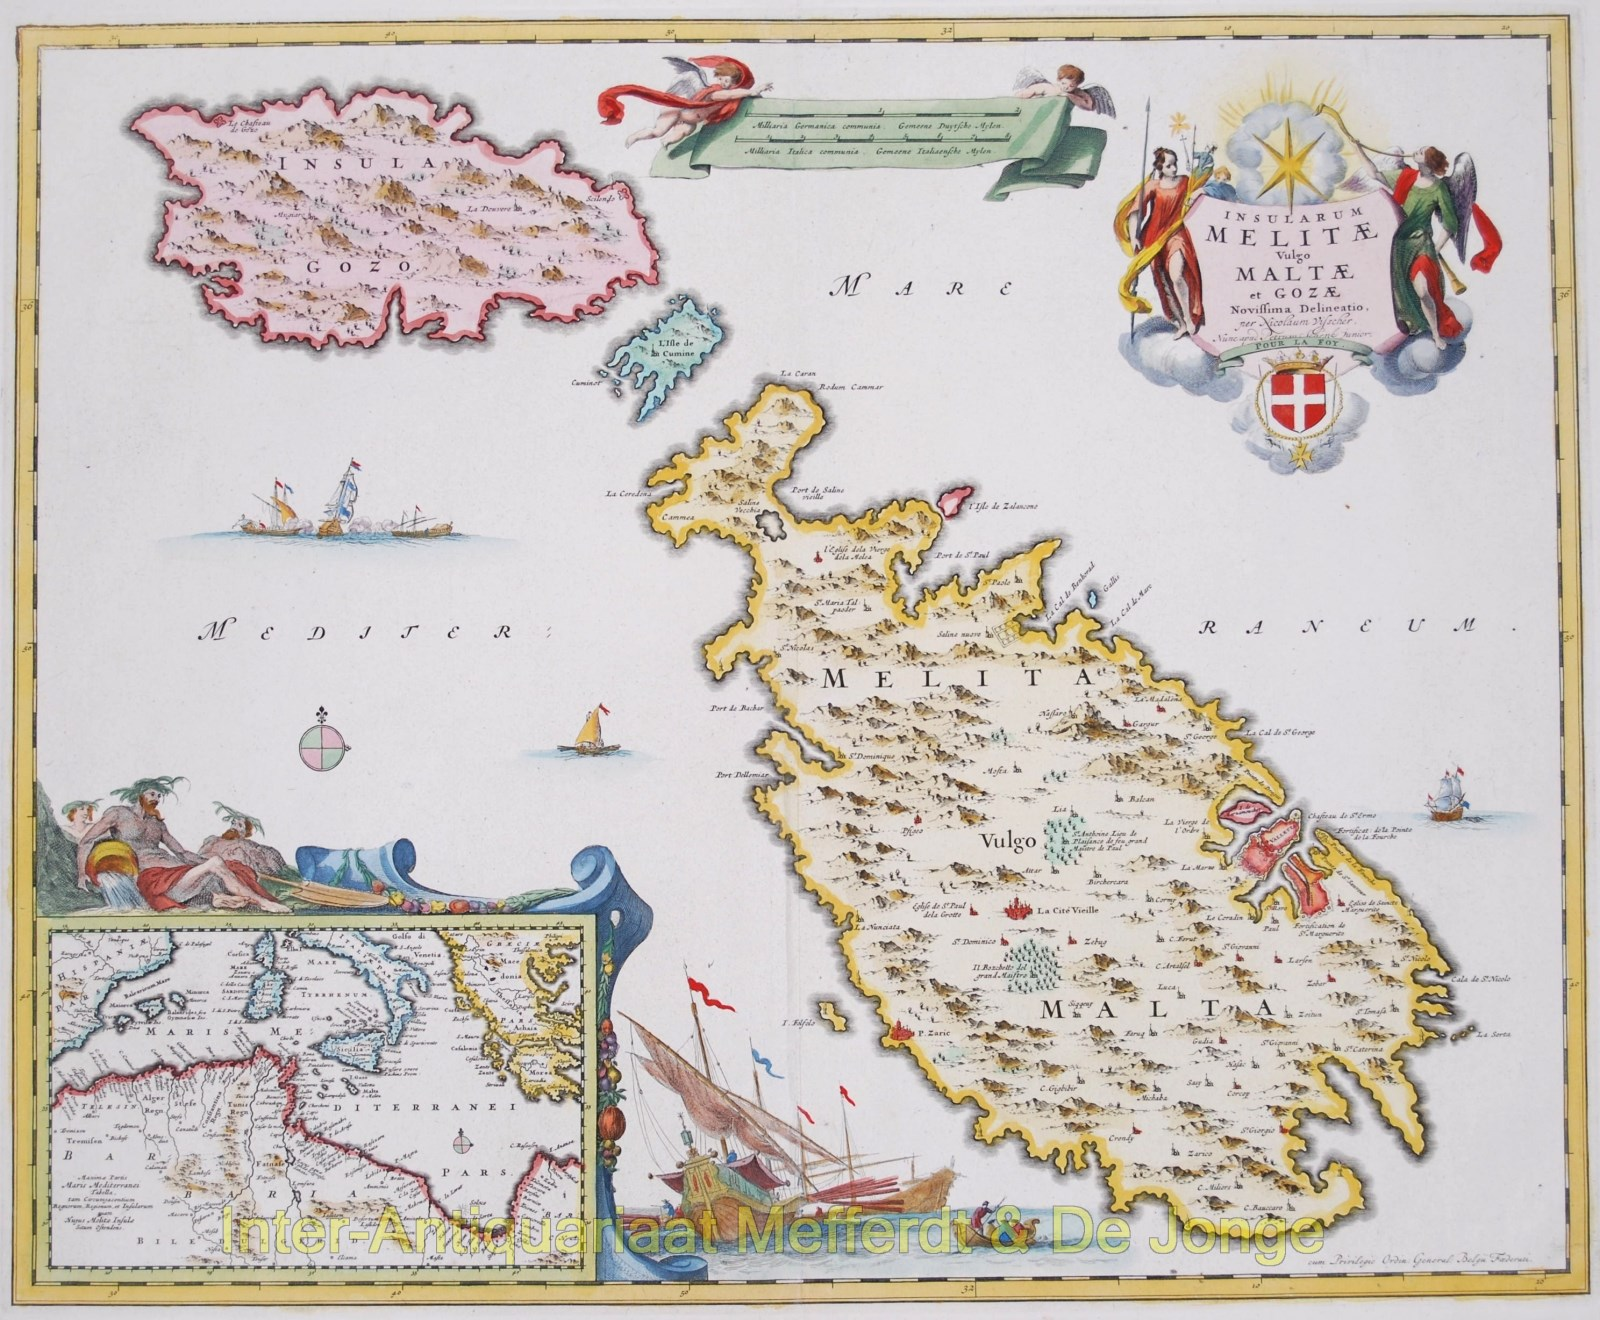 Malta and Gozo map - Visscher